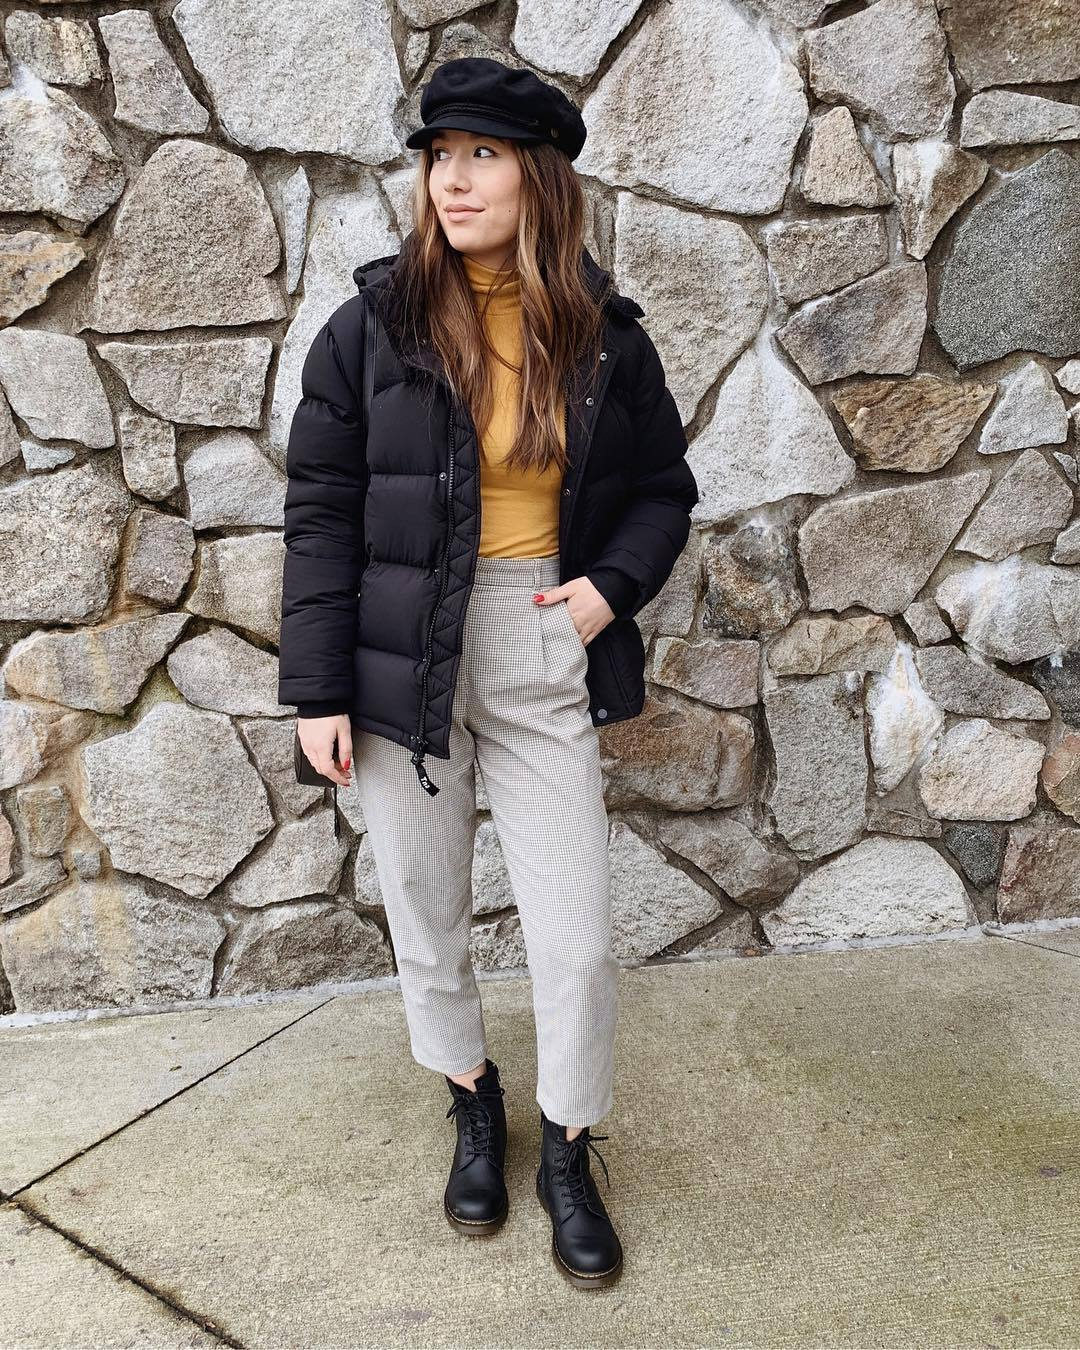 top turtleneck black boots ankle boots lace up boots high waisted pants black jacket puffer jacket beret